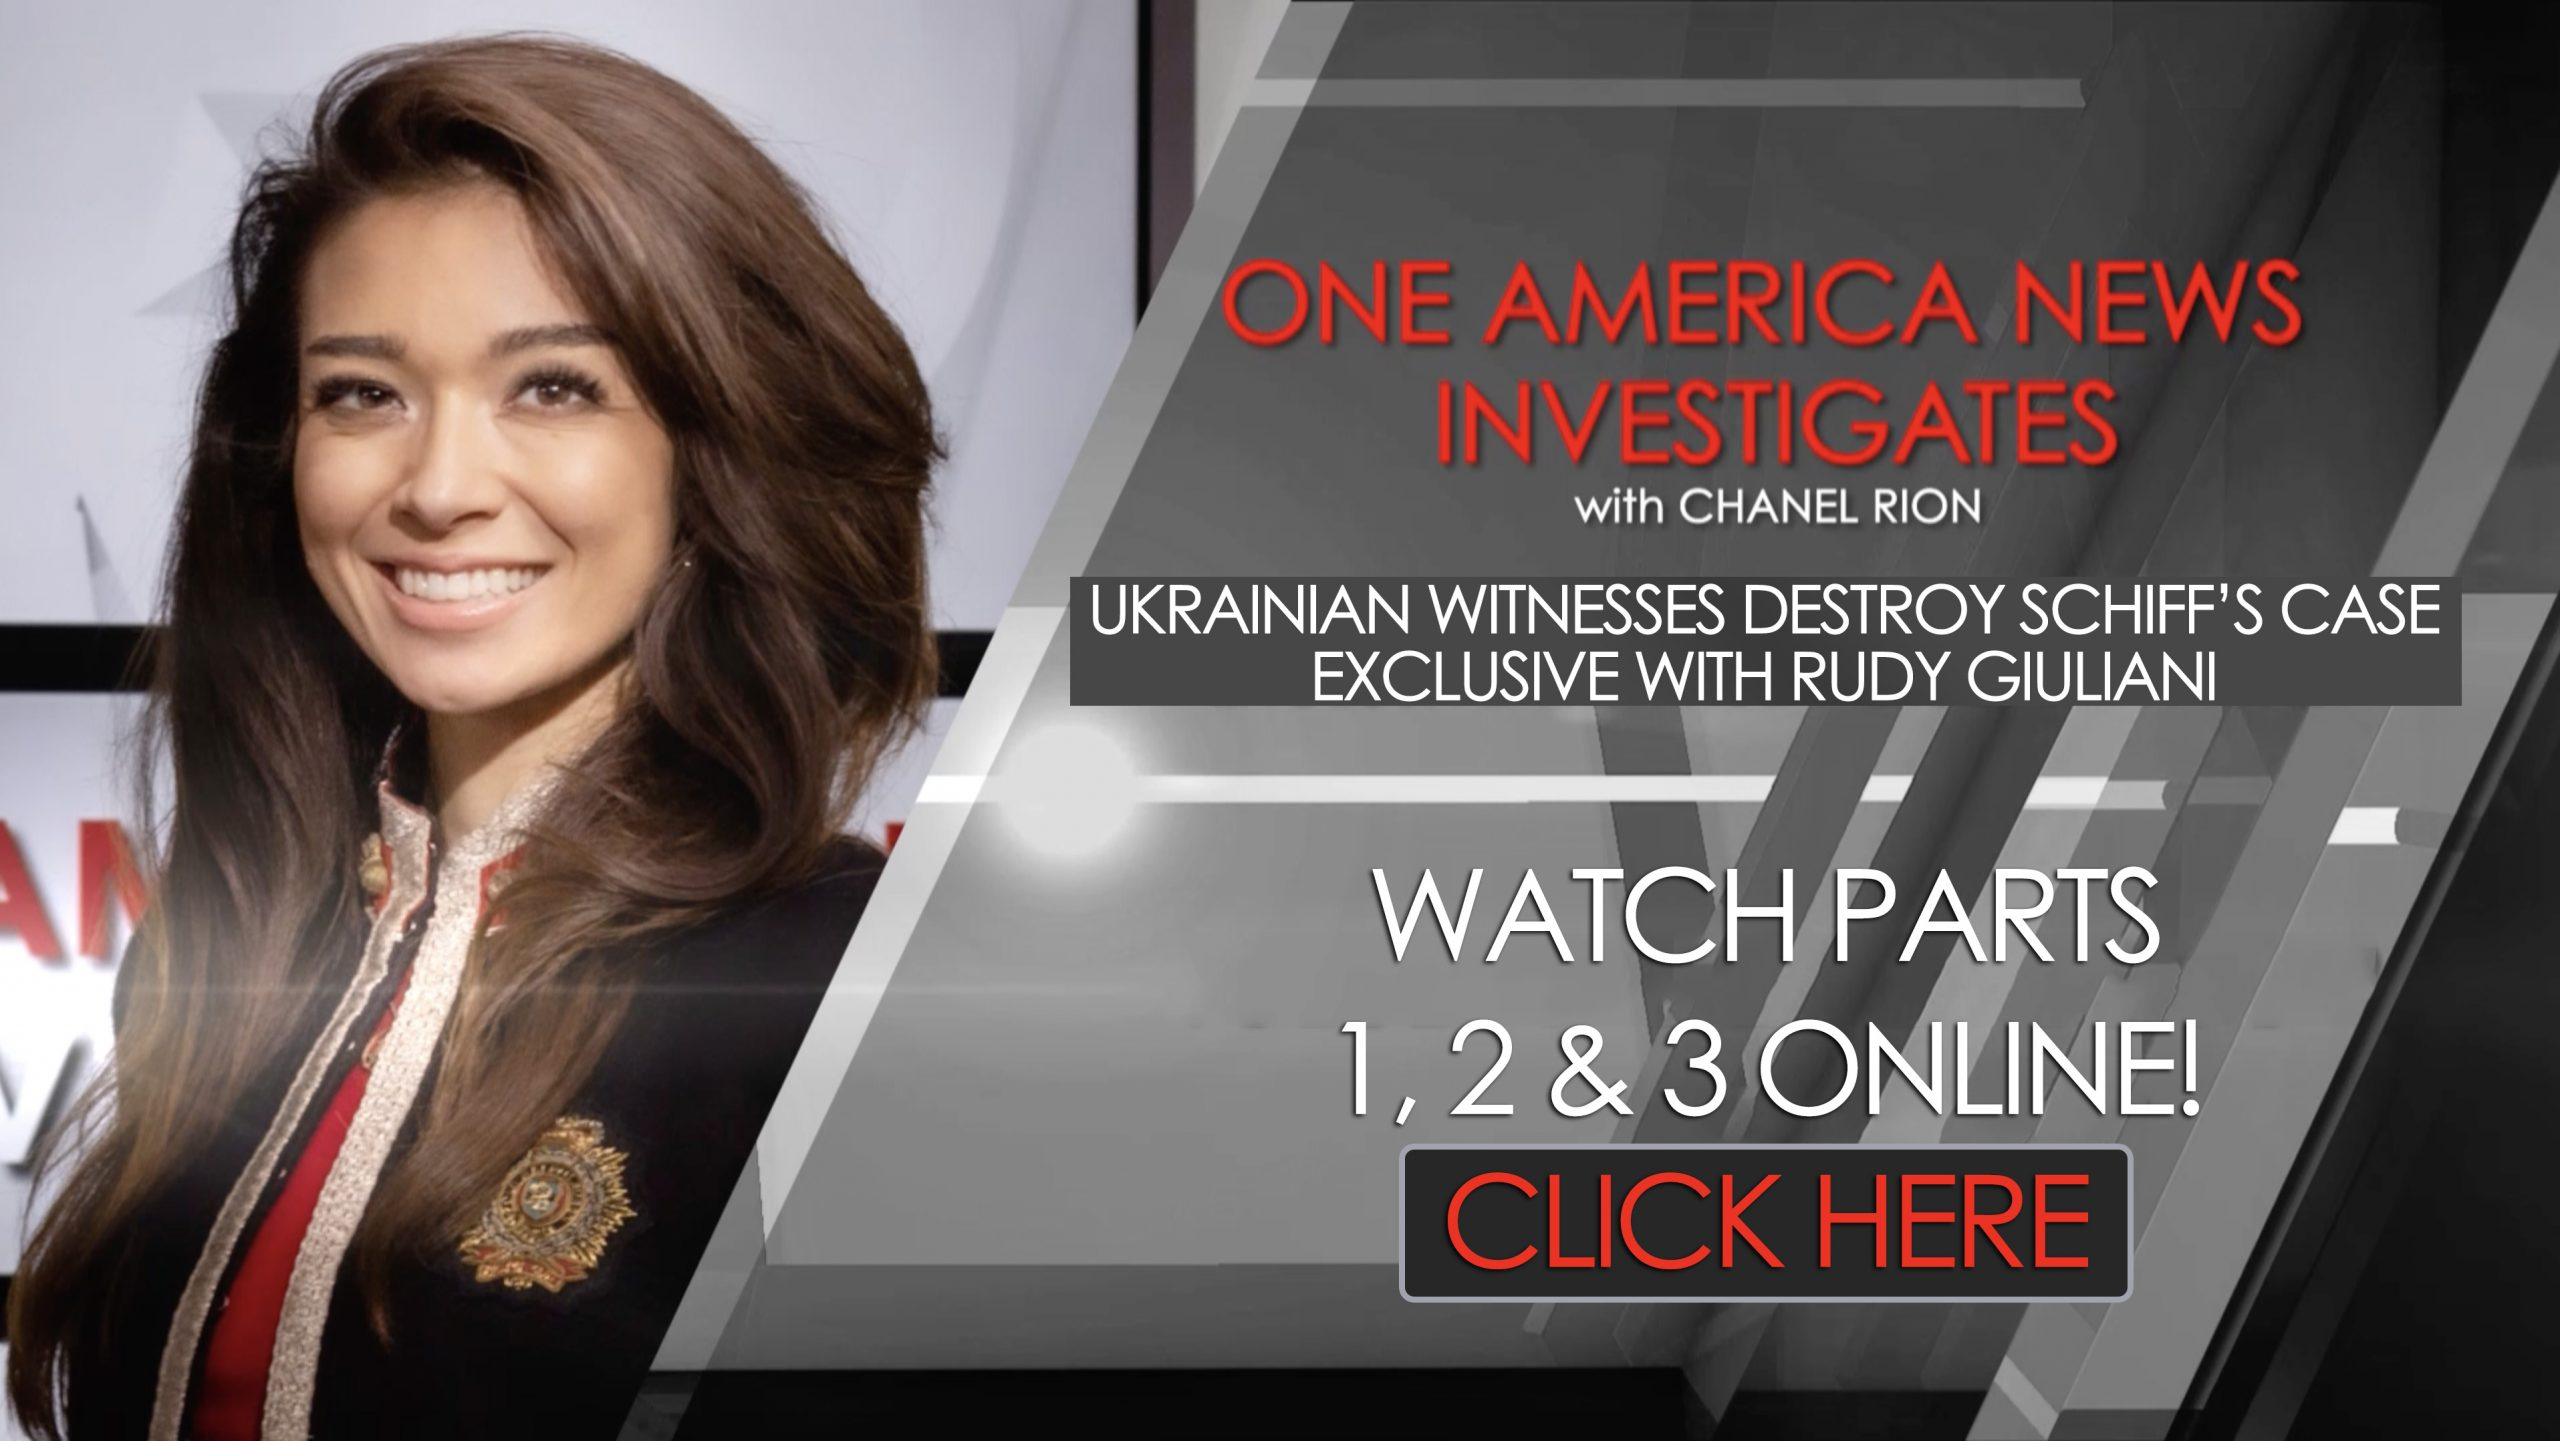 To Watch All 3 Parts Of One America News Investigates With Chanel Rion, CLICK HERE!